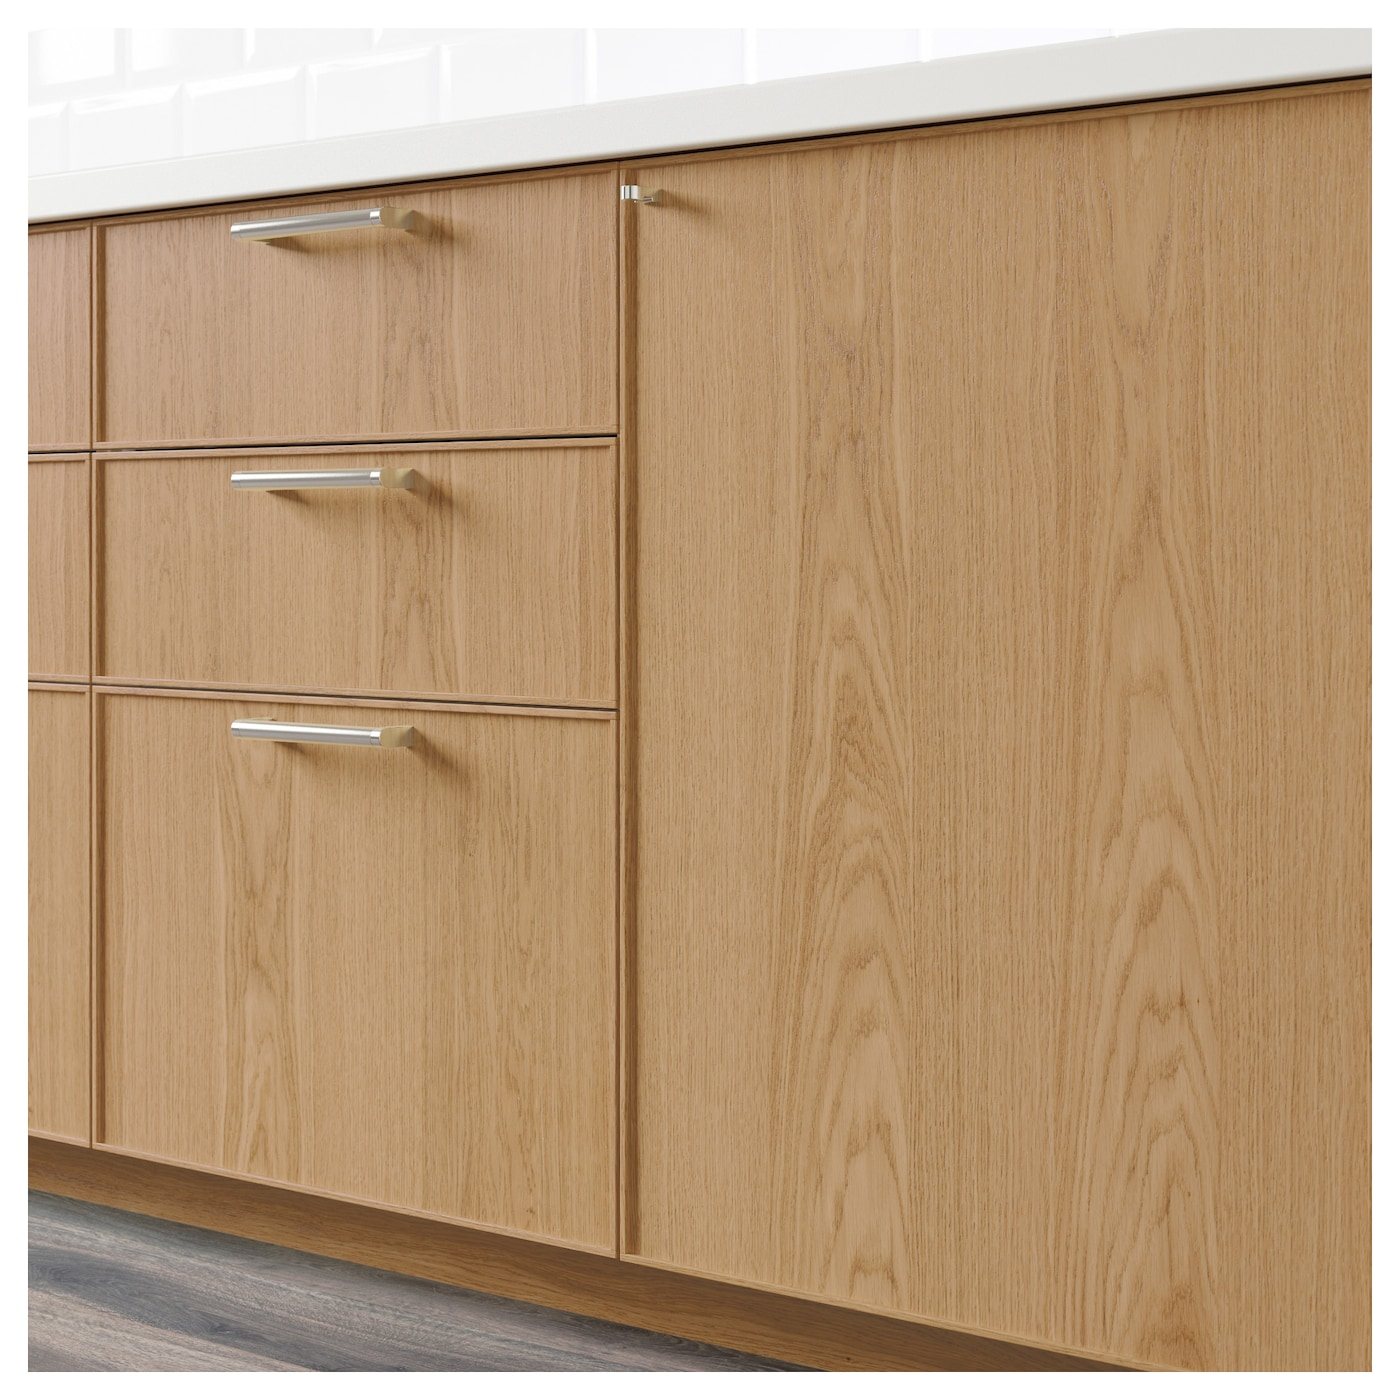 IKEA EKESTAD drawer front 25 year guarantee. Read about the terms in the guarantee brochure.